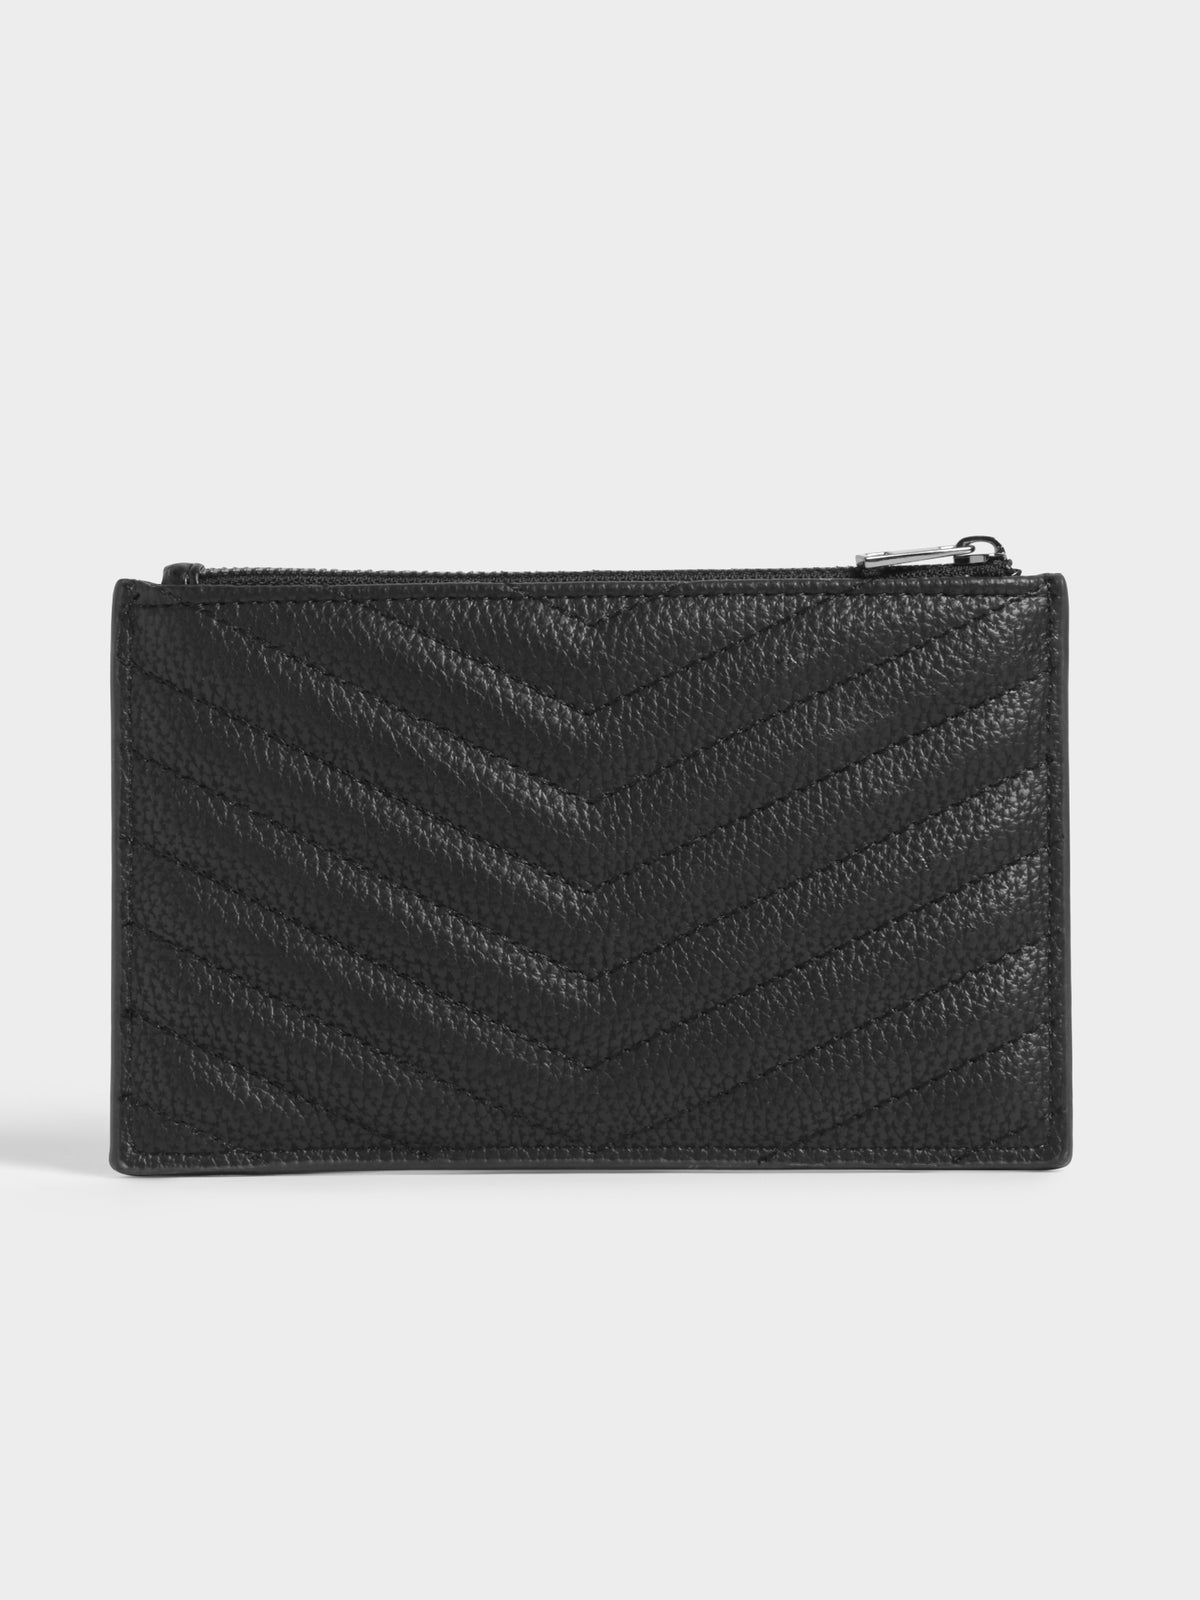 Millie Pouch in Black Chevron Quilt